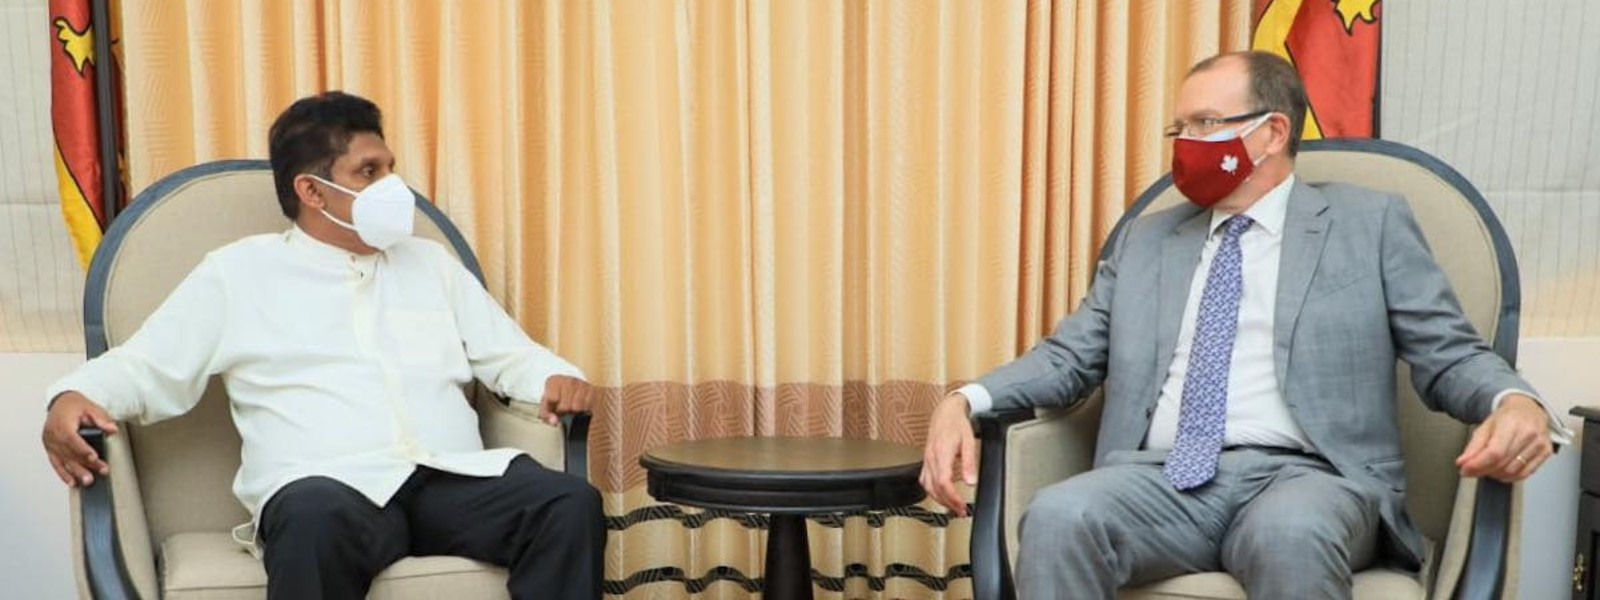 Canadian High Commissioner meets Opposition Leader for talks